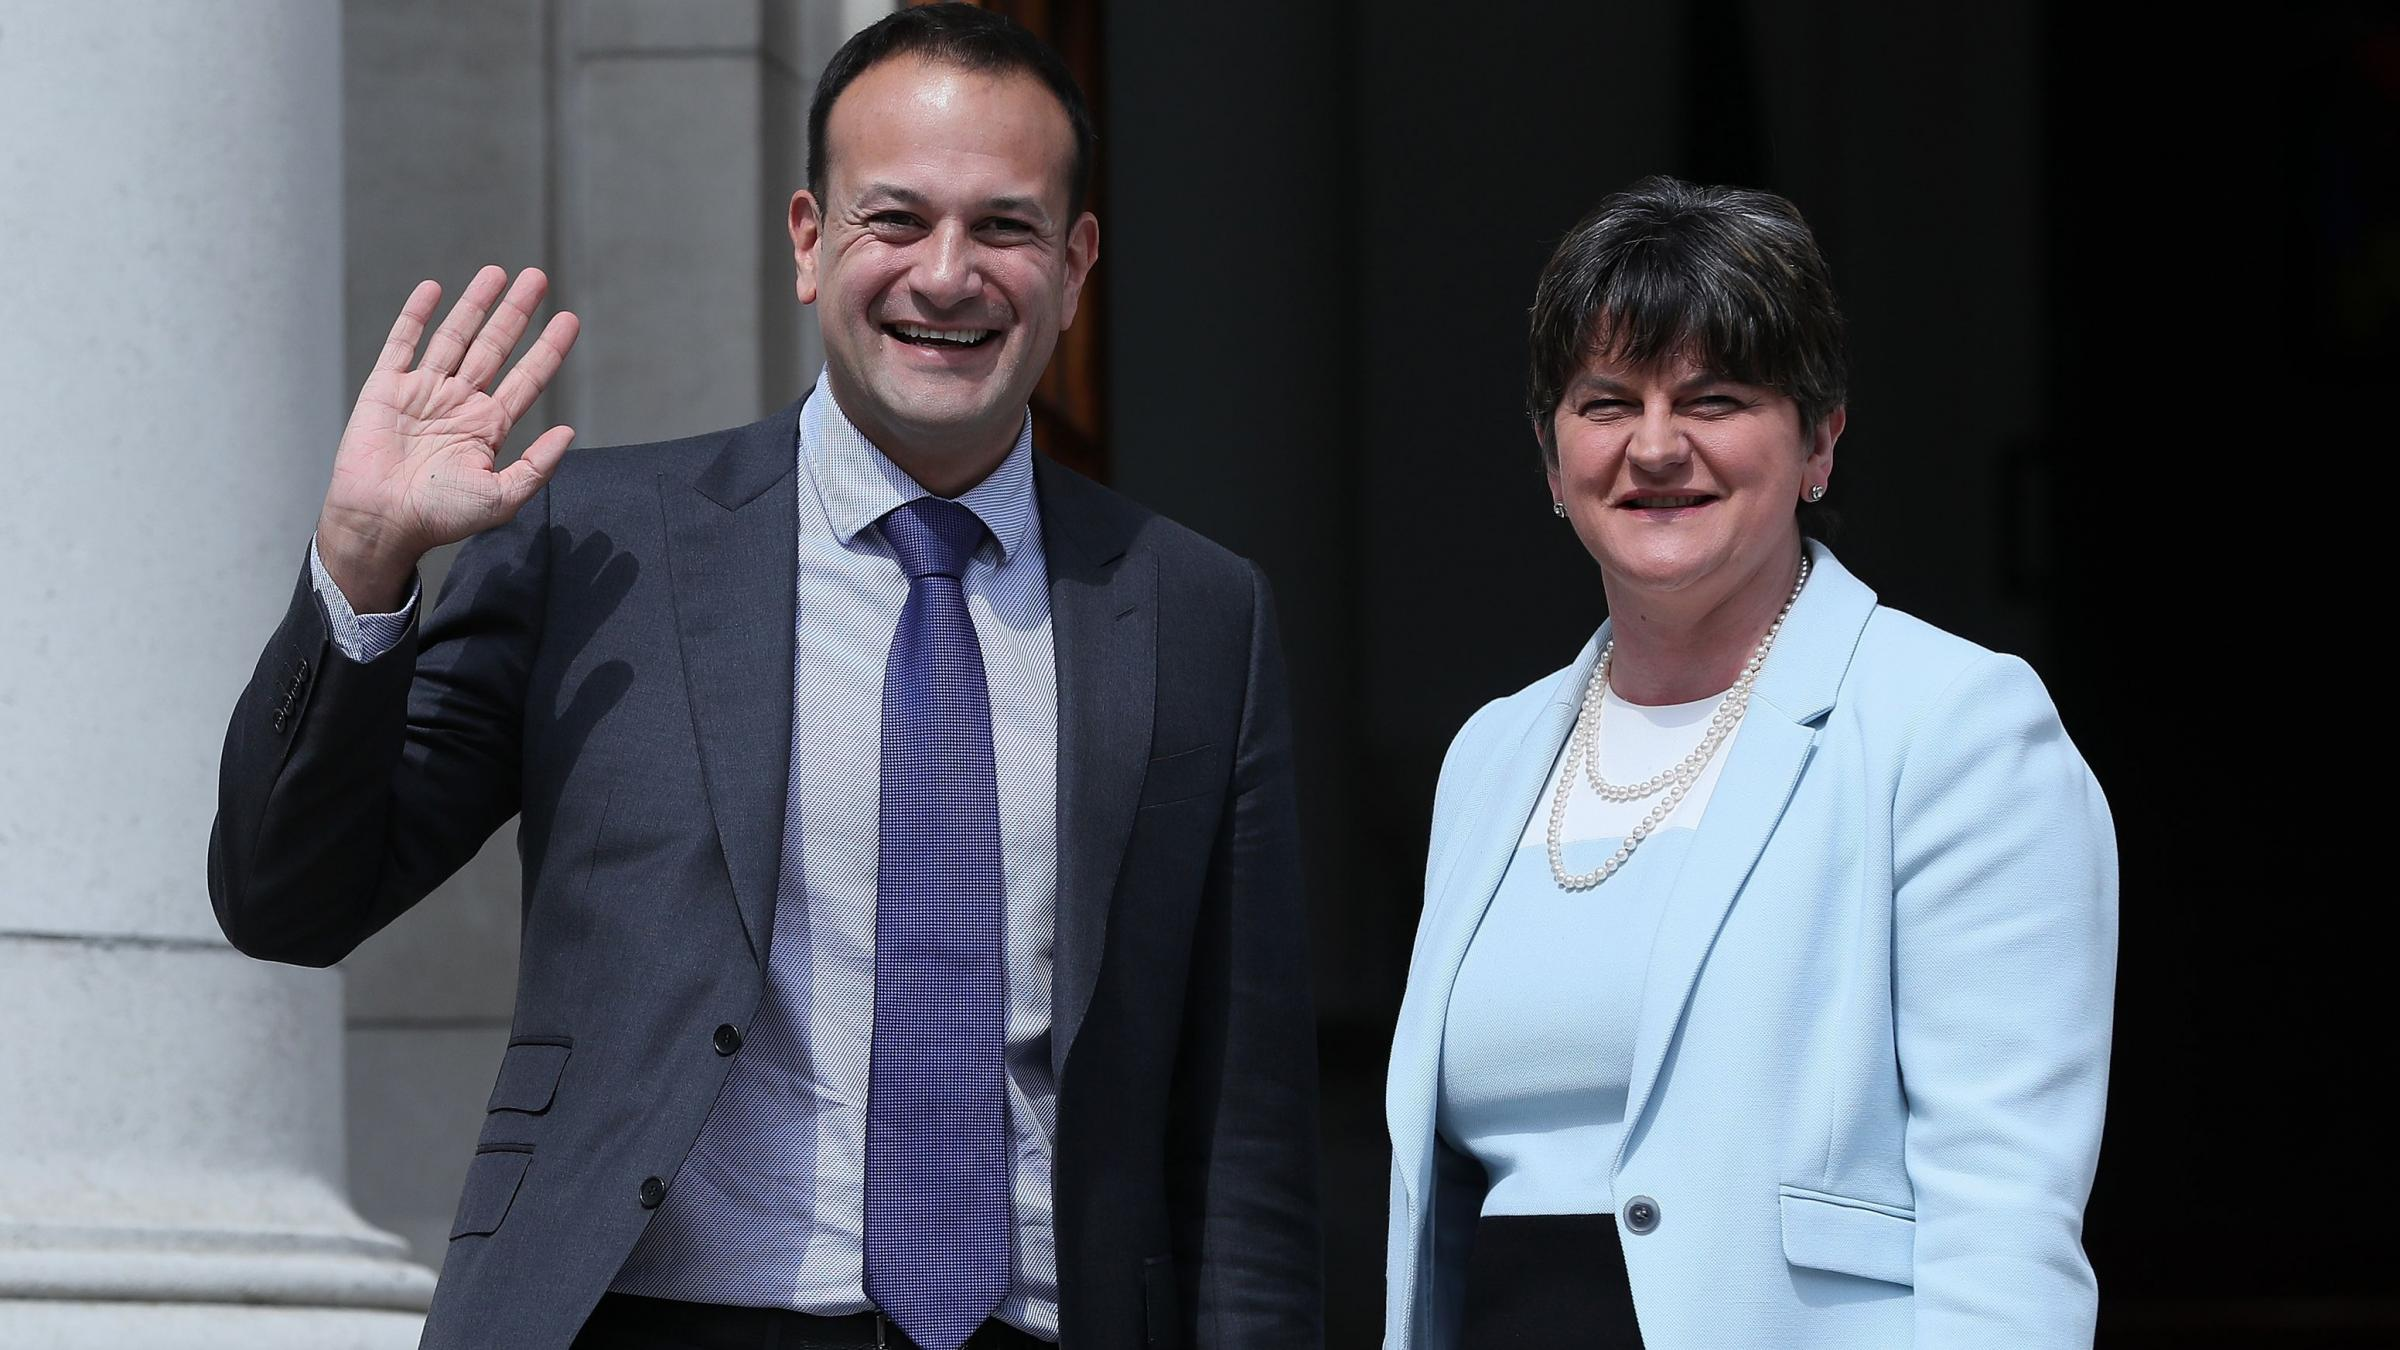 Arlene Foster's DUP leadership could scupper powersharing talks, Sinn Fein warns